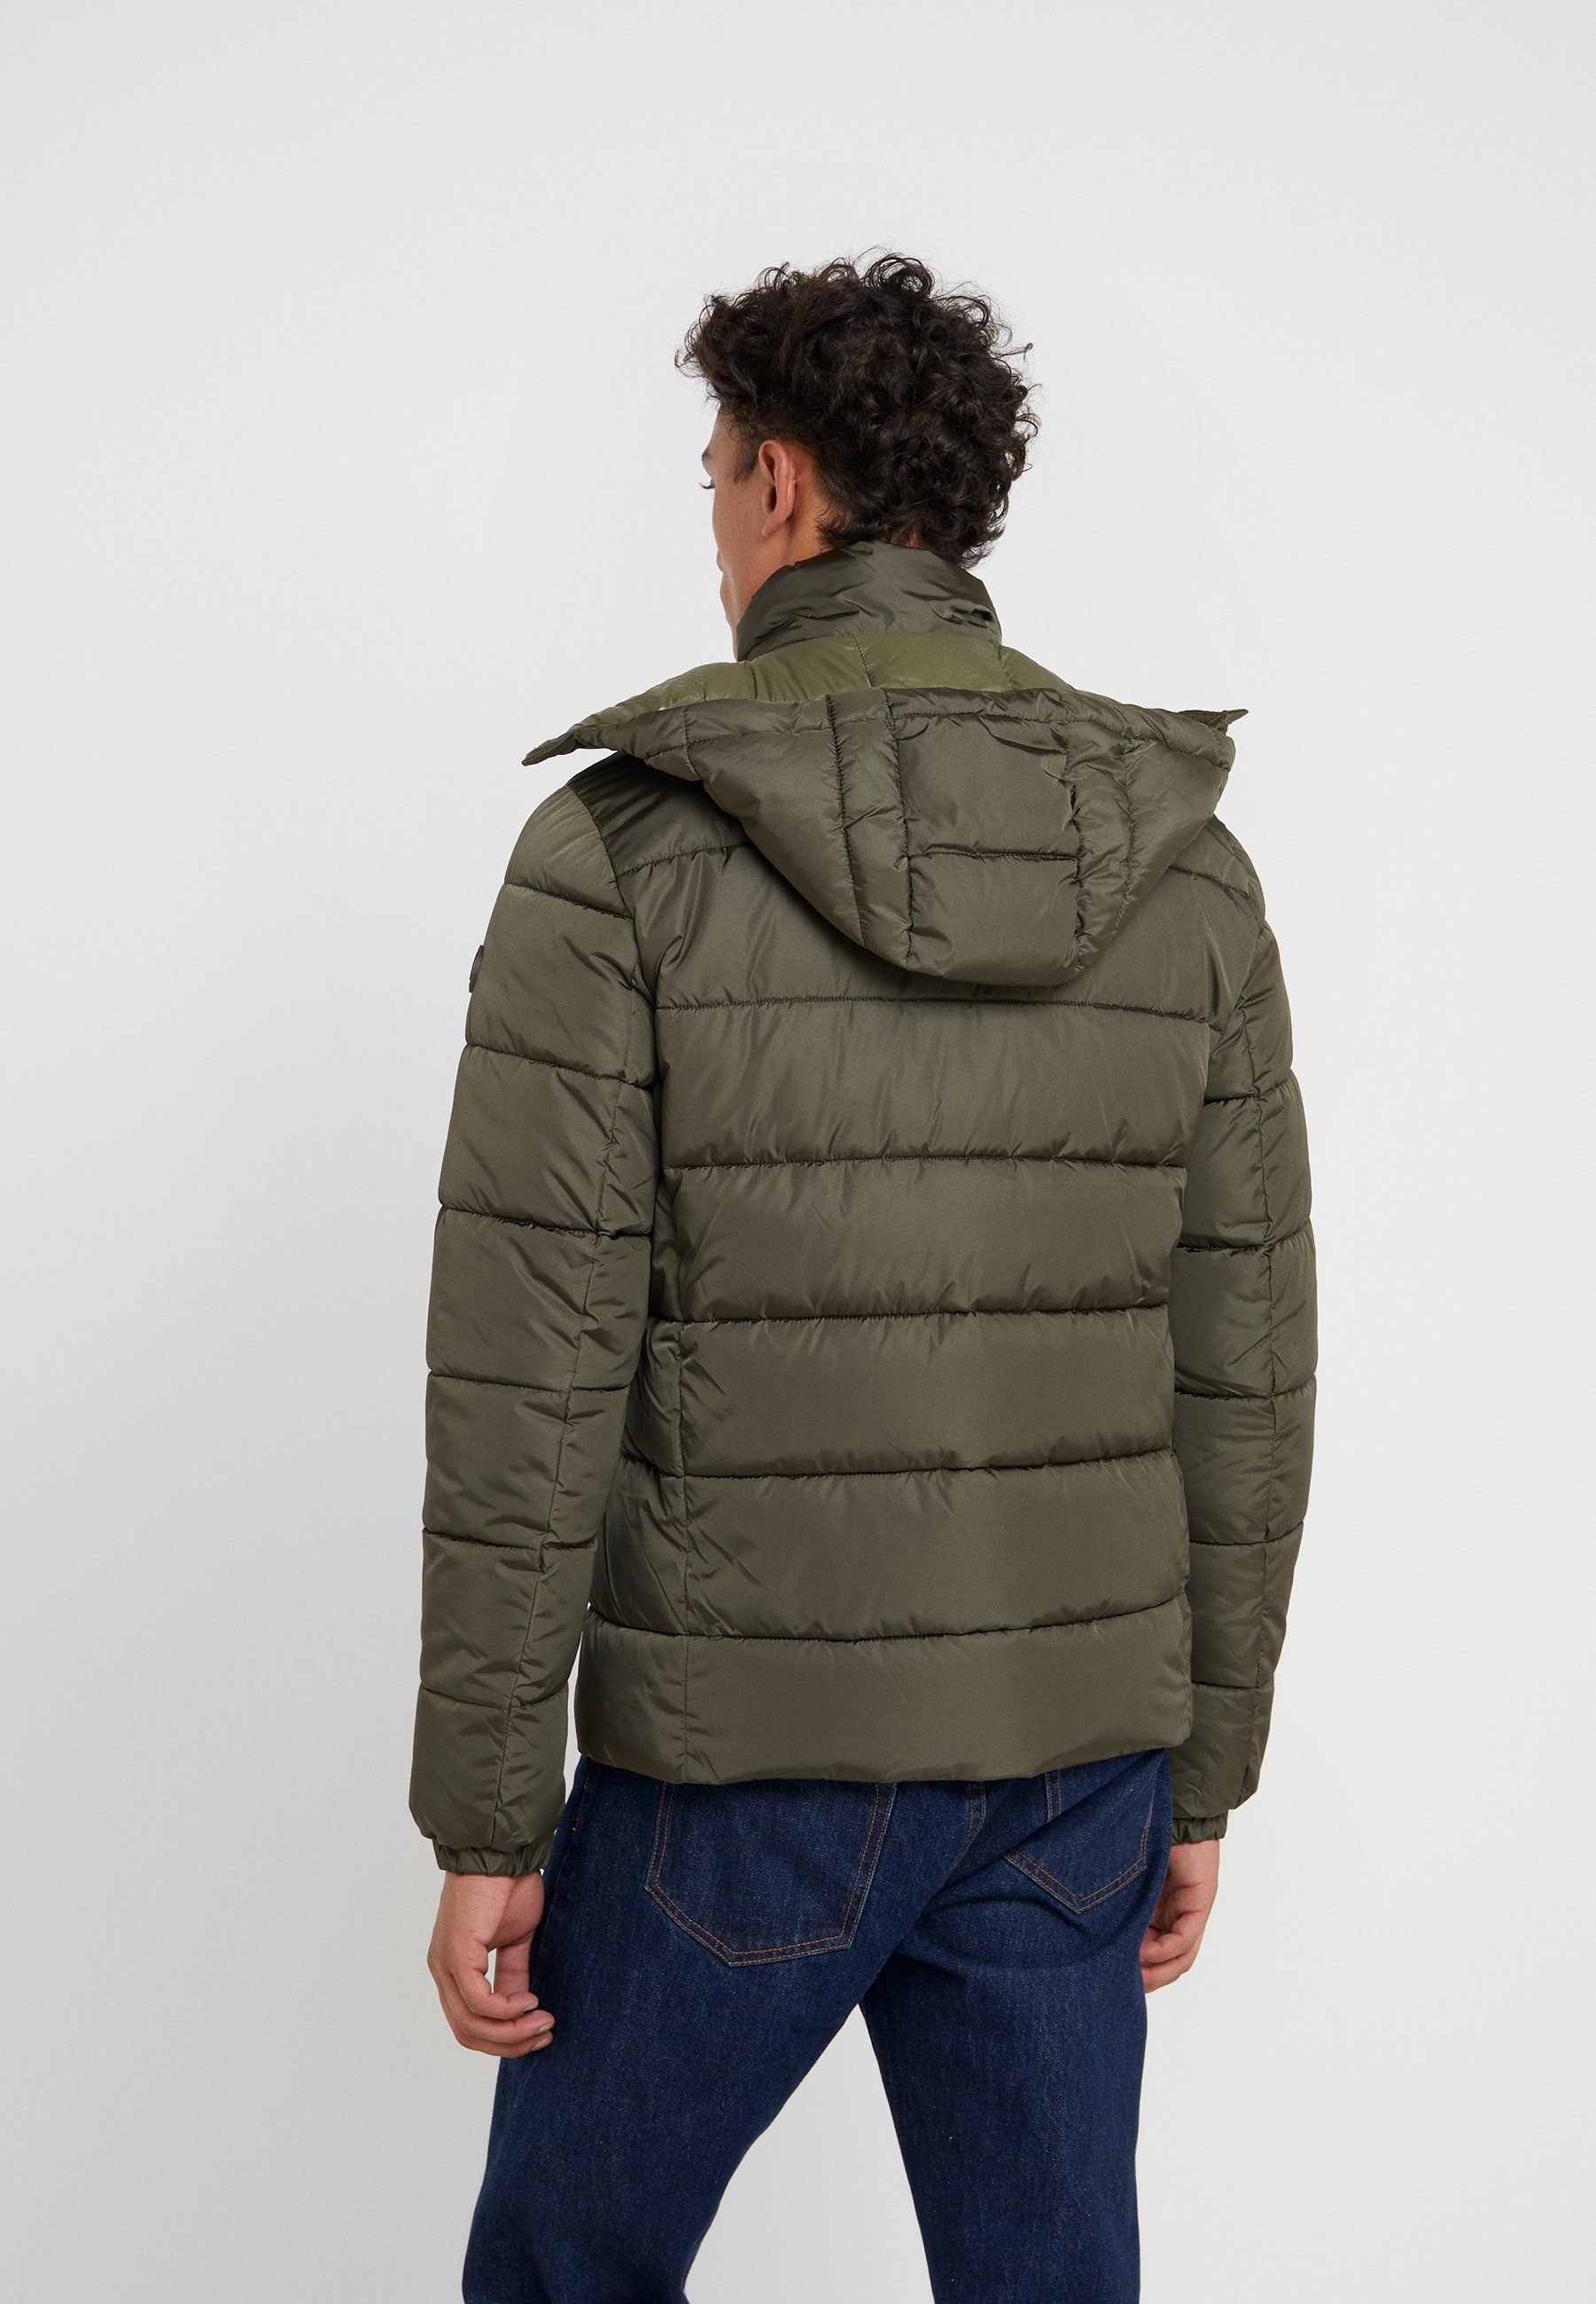 Duck Dusty The Olive MegaVeste D'hiver Save dBxerCWo